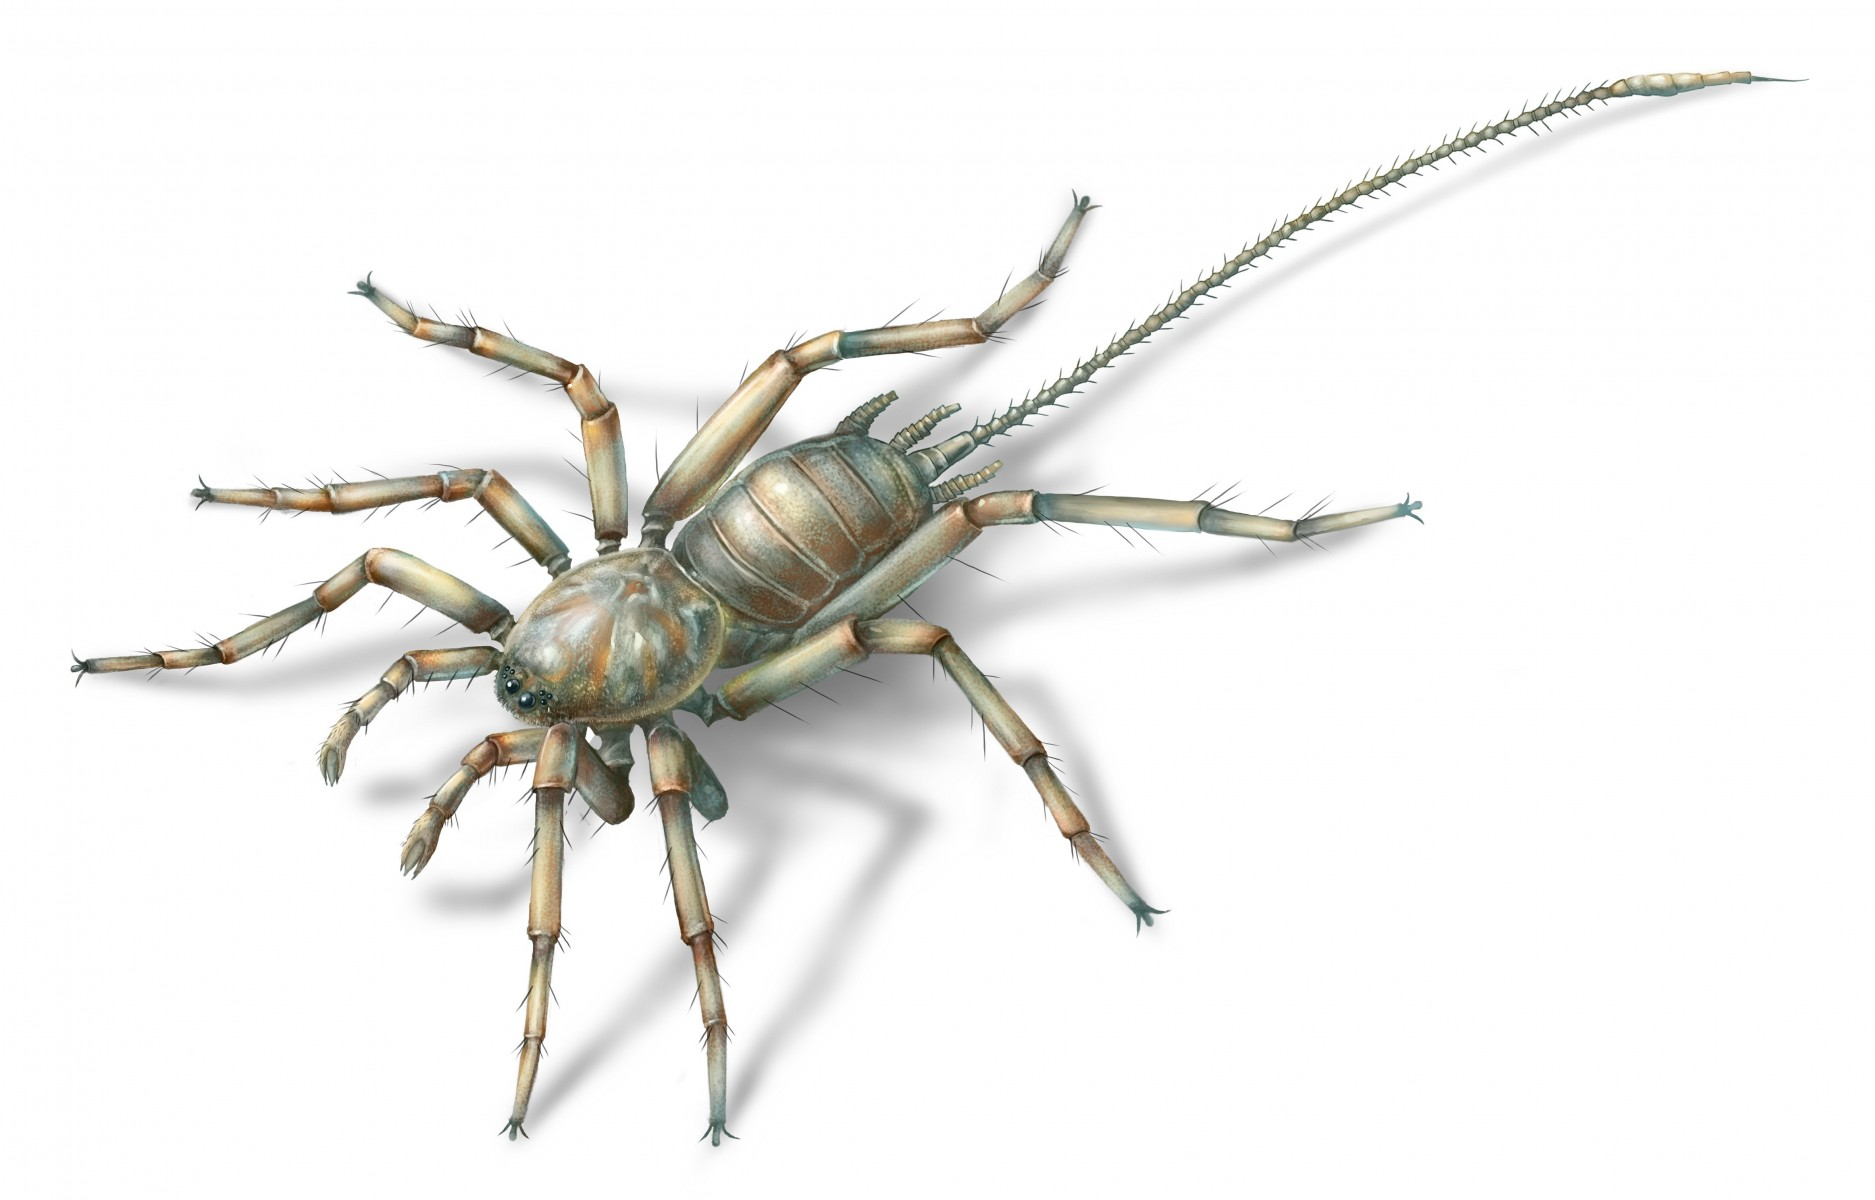 Ancient arachnid: 100-million-year-old spider found trapped in amber